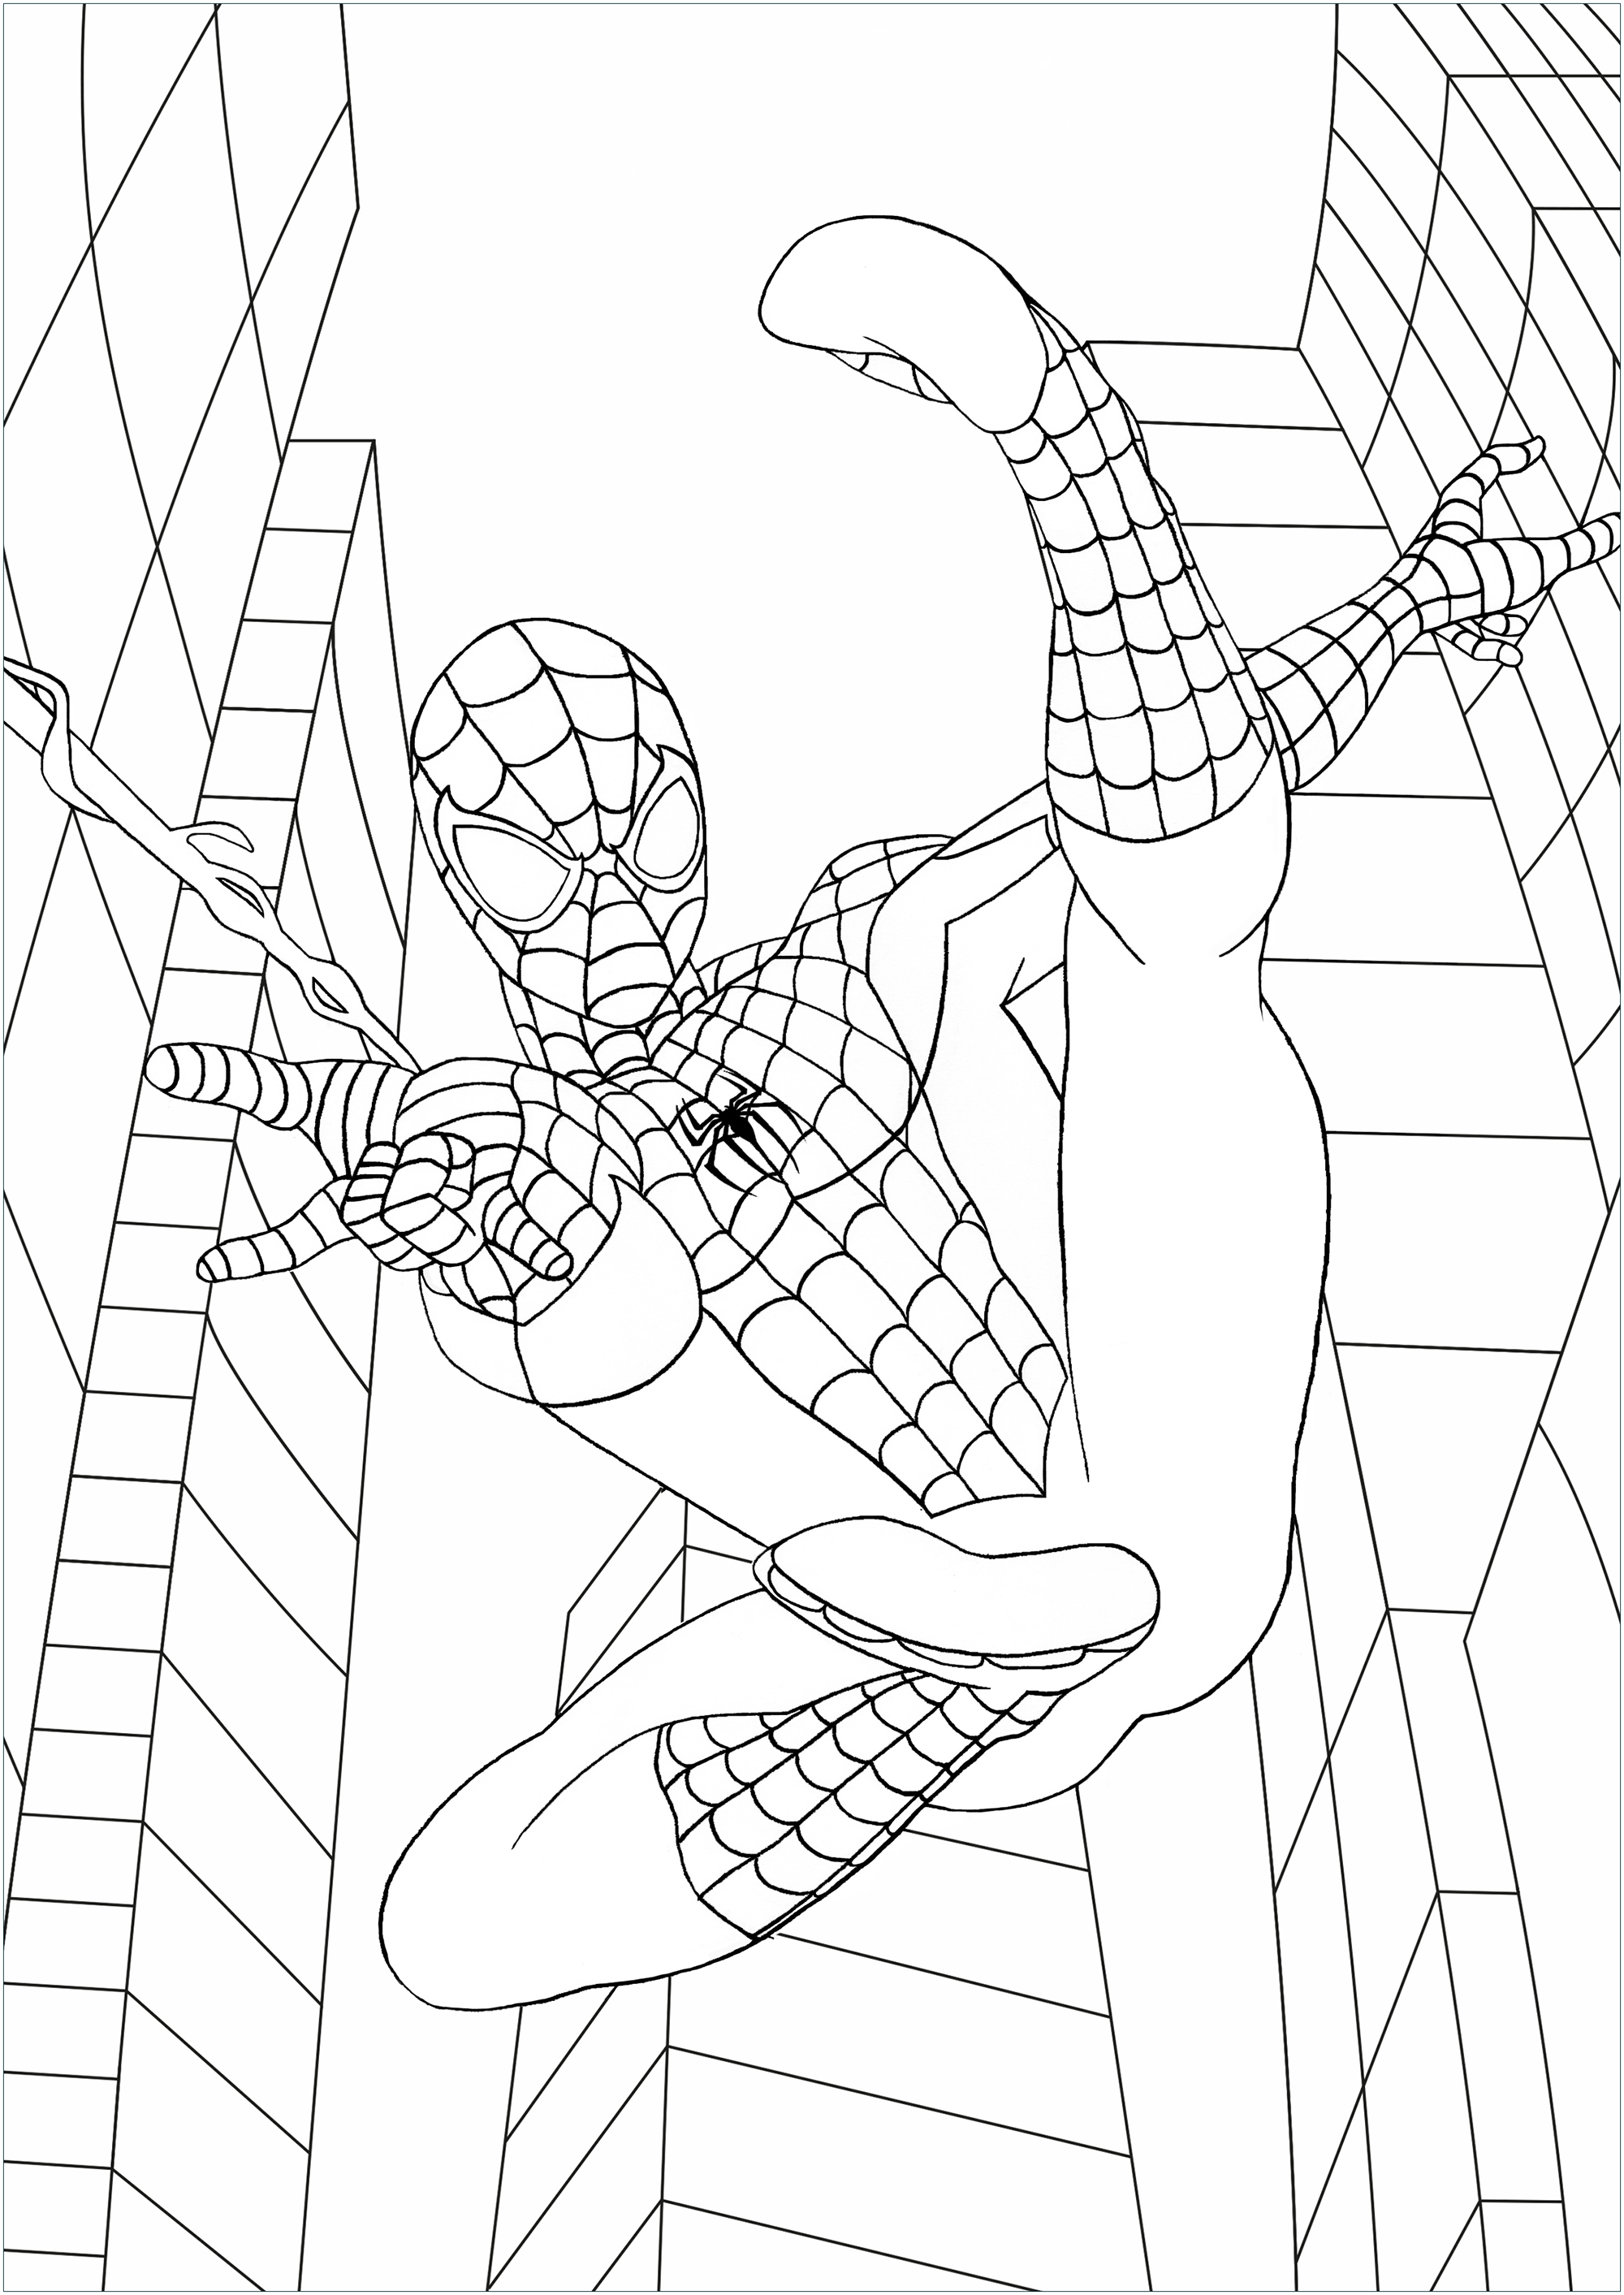 coloring spiderman for kids spiderman coloring pages coloring pages kidsuki for coloring kids spiderman